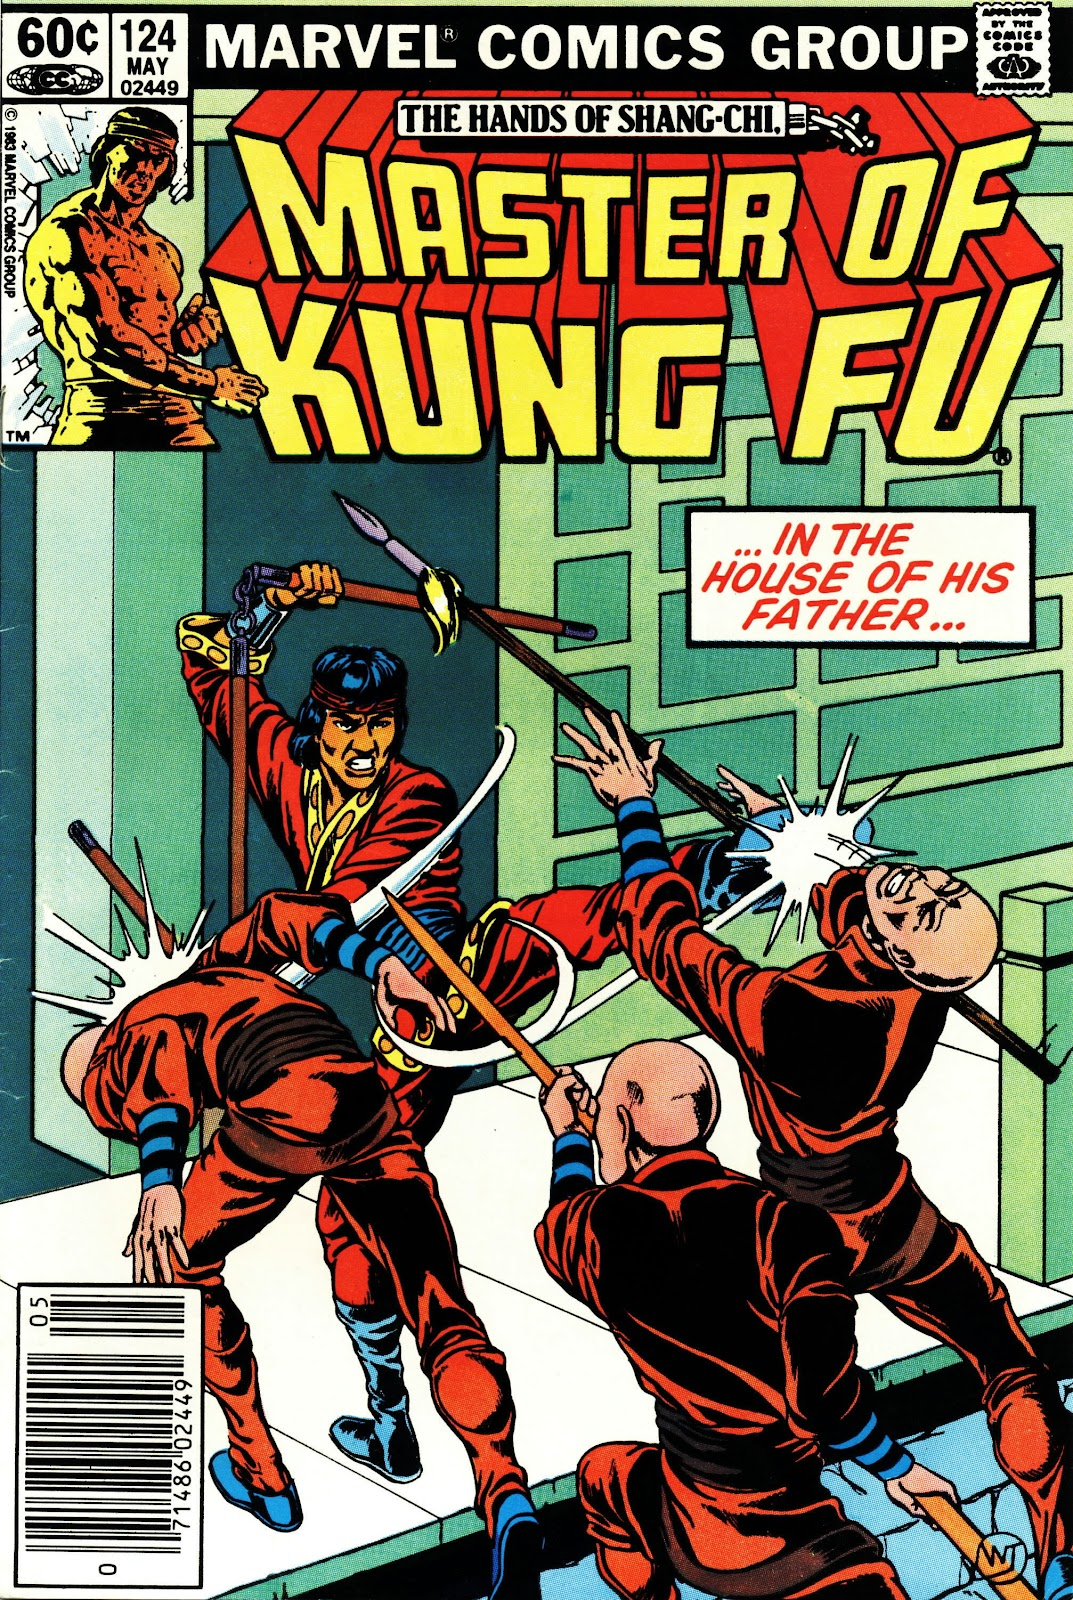 Master of Kung Fu (1974) issue 124 - Page 1